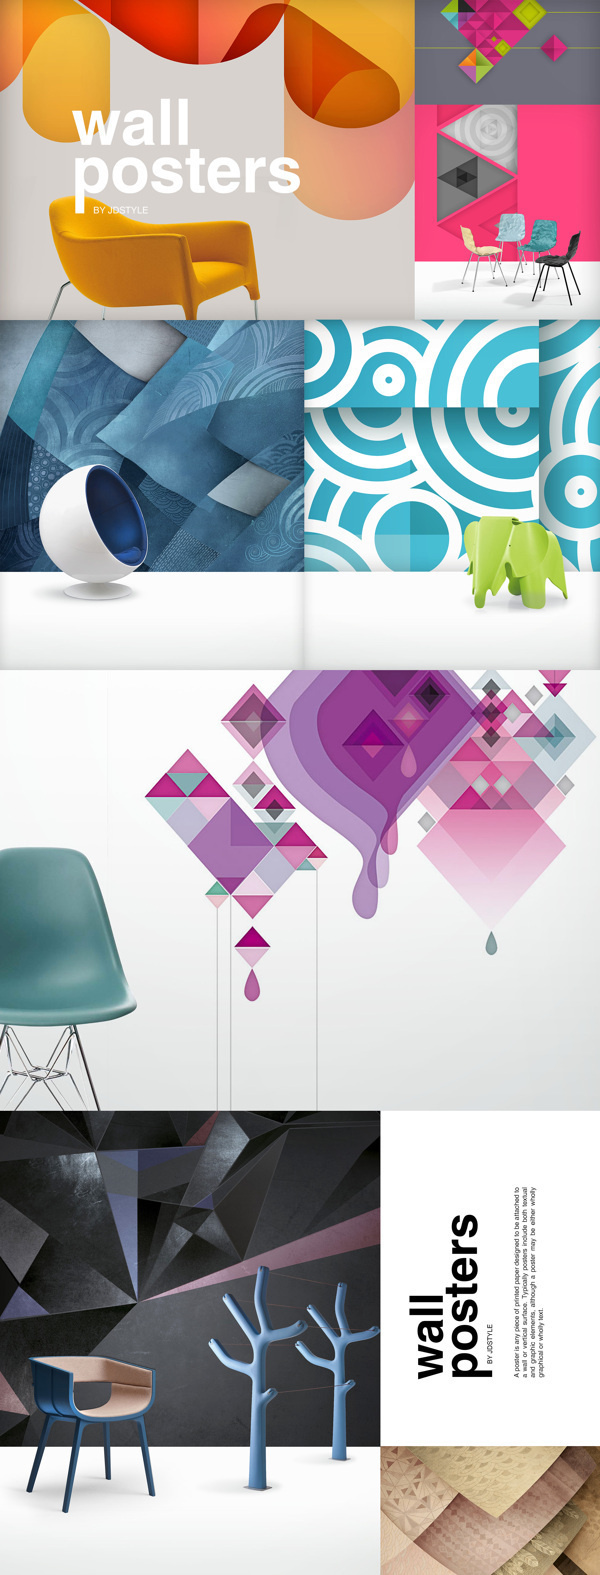 Wall posters on Behance #chair #design #illustration #wall #posters #jdstyle